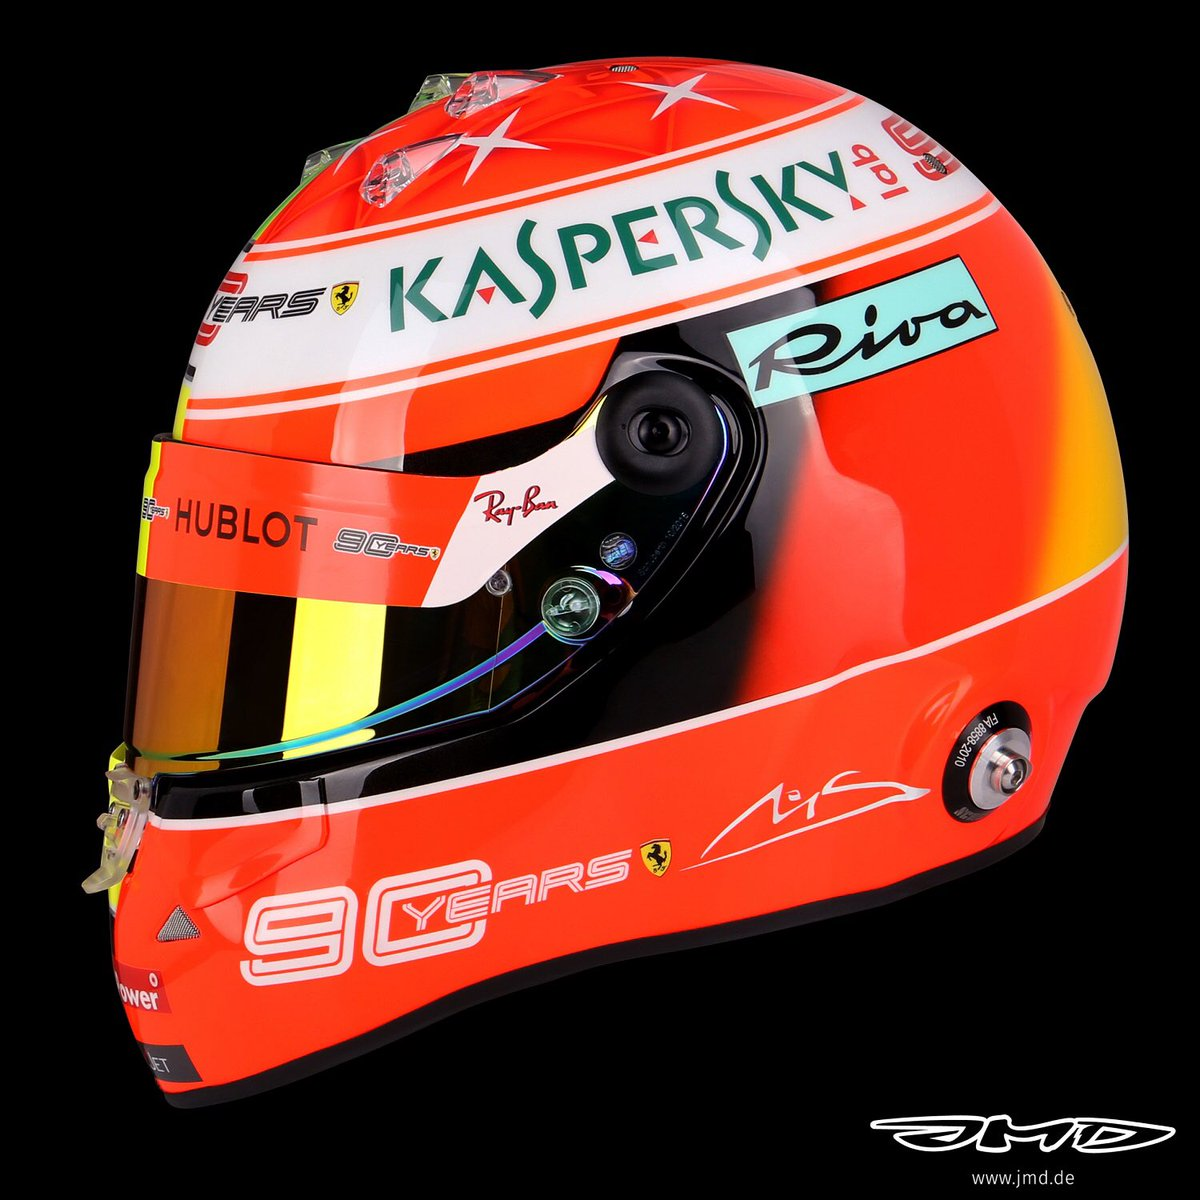 Jens Munser Designs On Twitter Mick Schumacher Driving His Father S Ferrari F2004 In Hockenheim Obviously Deserves A Special Helmet Michael S 2004 Design On One Side Mick S 2019 Design On The Other Https T Co Xxmxej1kpn